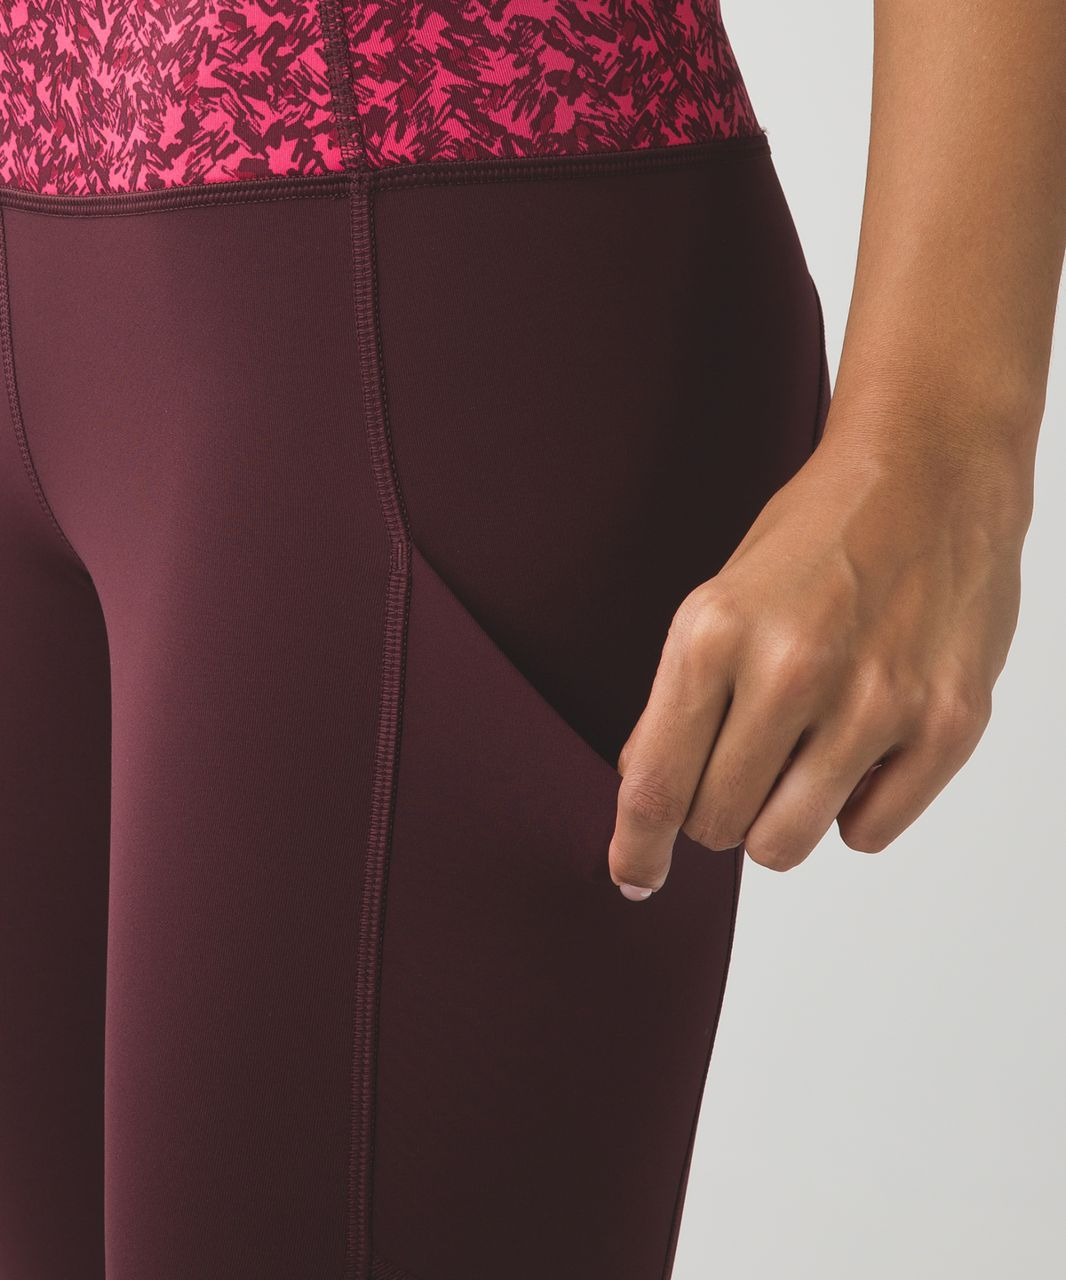 Lululemon Speed Tight IV *Brushed - Bordeaux Drama / Mountain Peaks Bon Bon Bordeaux Drama